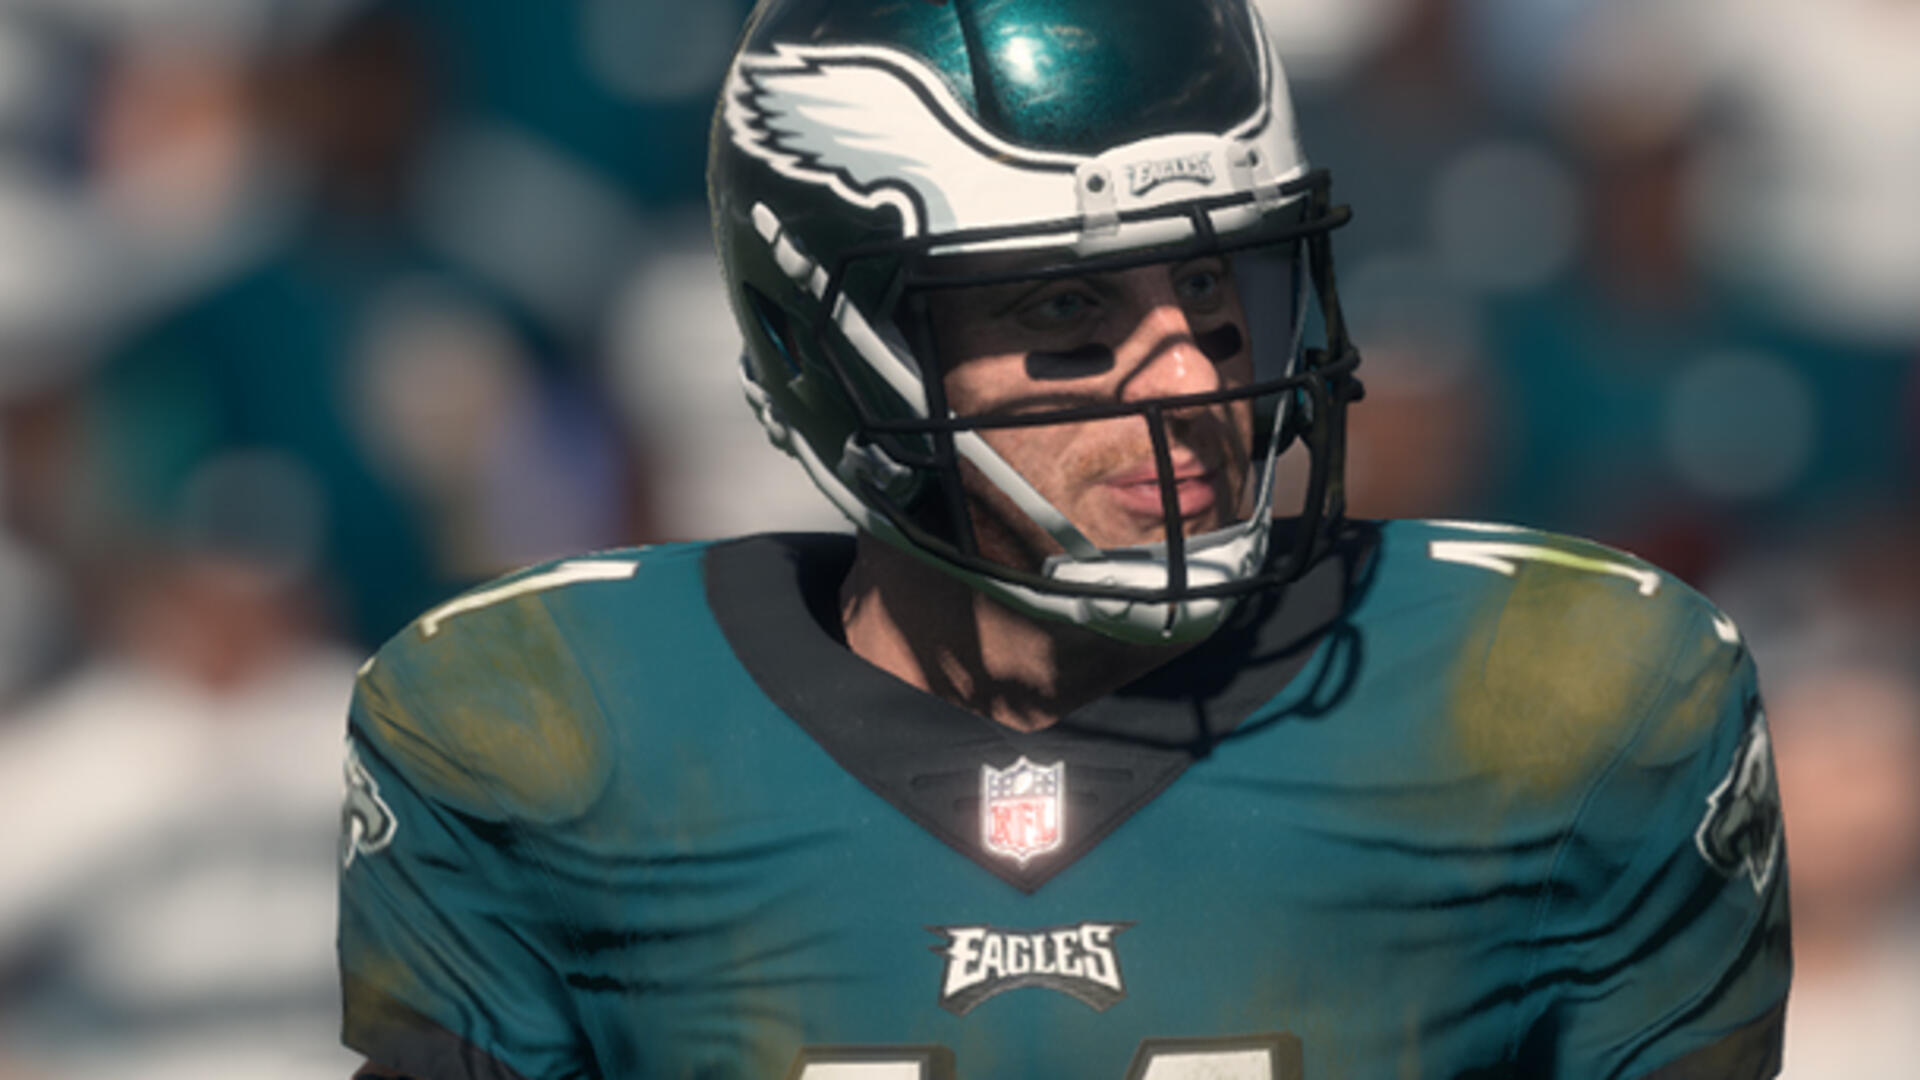 Madden 19 Rookie Ratings - Best Madden 19 Rookie QB, HB, WR